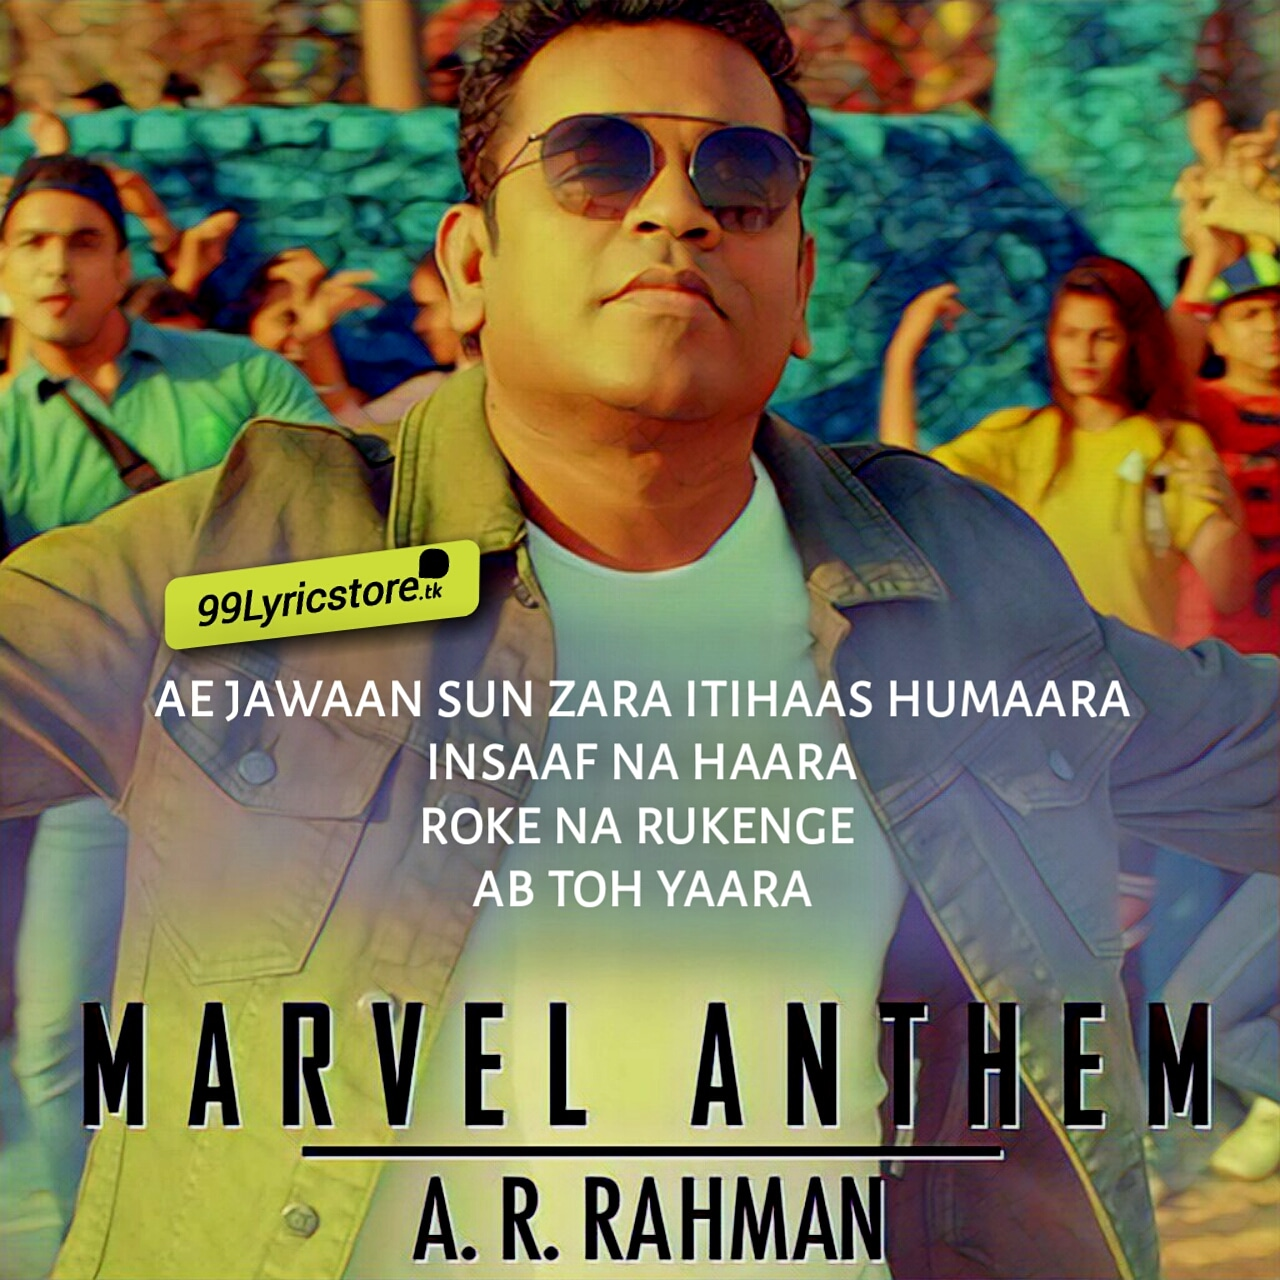 Marvel Anthem Lyrics Sung and Composed By A.R. Rahman In Hindi